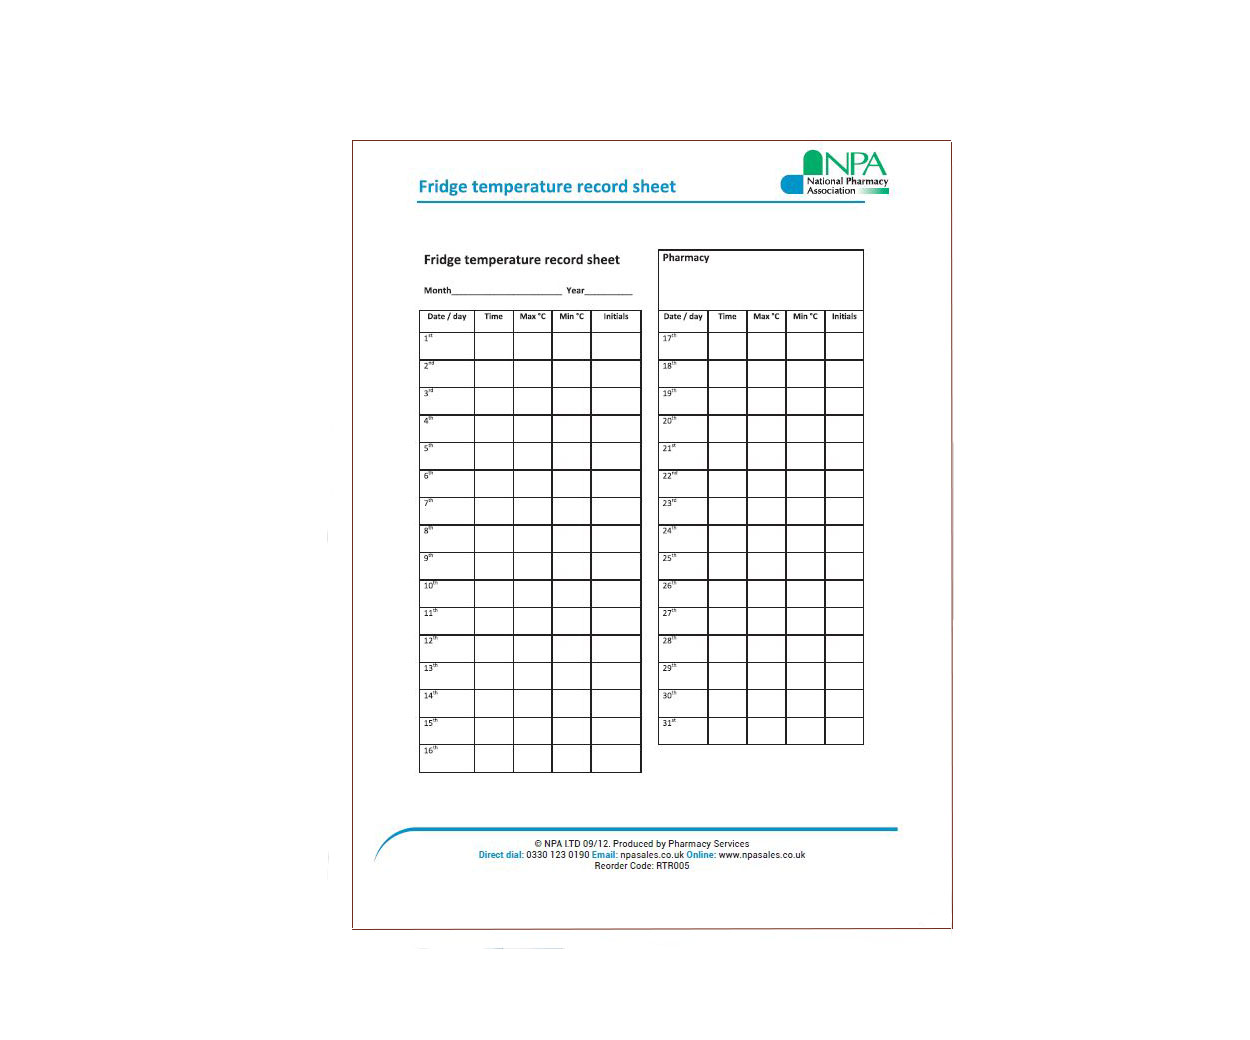 A5 Temperature Record Sheets for Pharmacy Fridge - Pack of 12